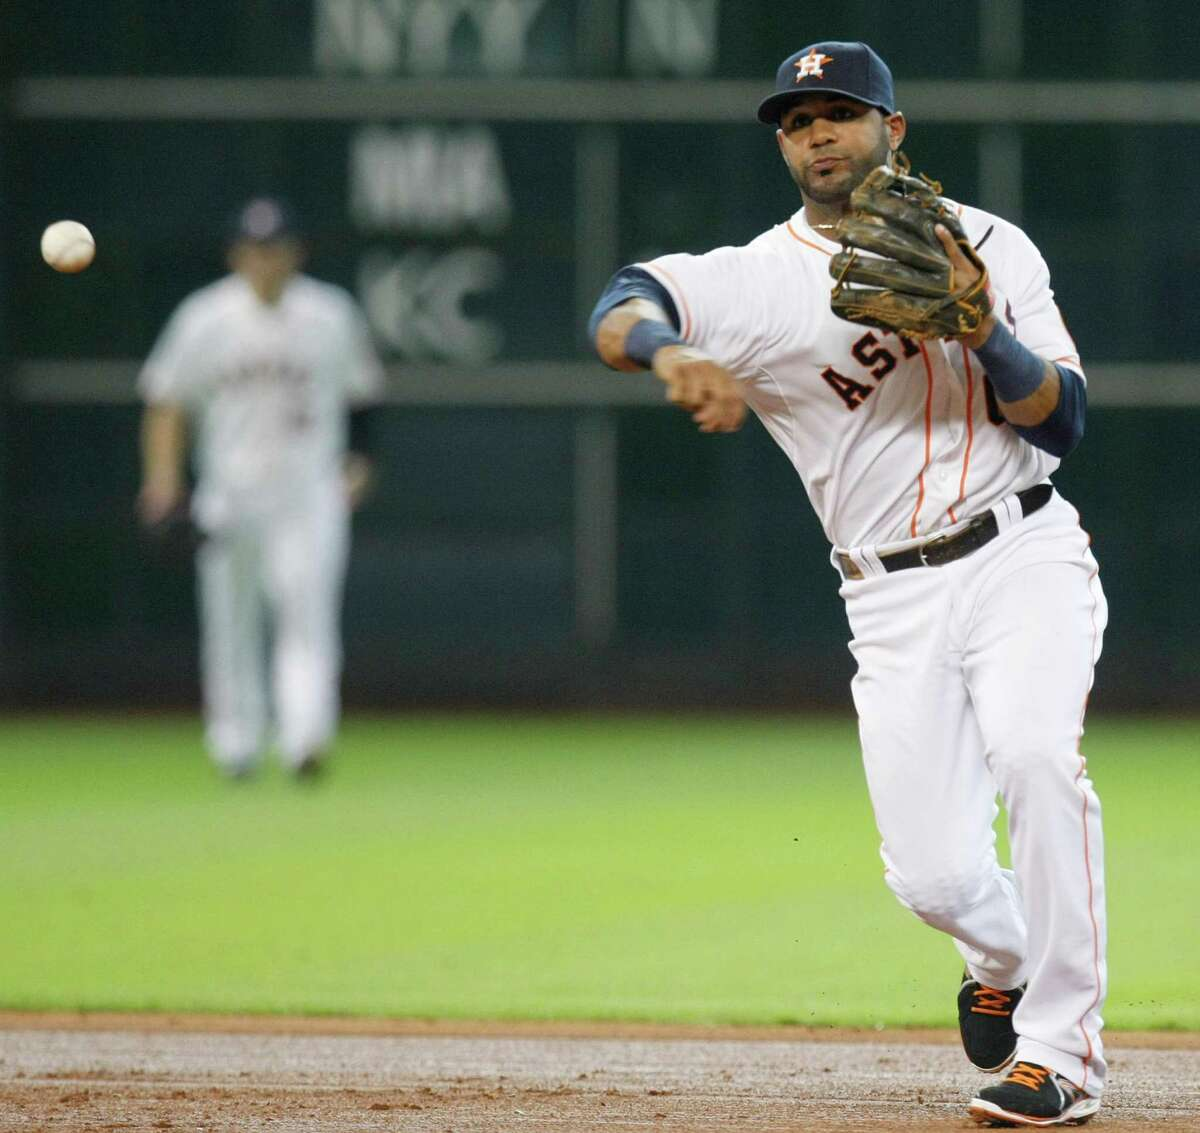 Houston Astros shortstop Jonathan Villar (6) throws out Texas Rangers center fielder Leonys Martin (2) at first base in the fifth inning as the Houston Astros played the Texas Rangers at Minute Maid Park Monday, Aug. 12, 2013, in Houston. ( Johnny Hanson / Houston Chronicle )